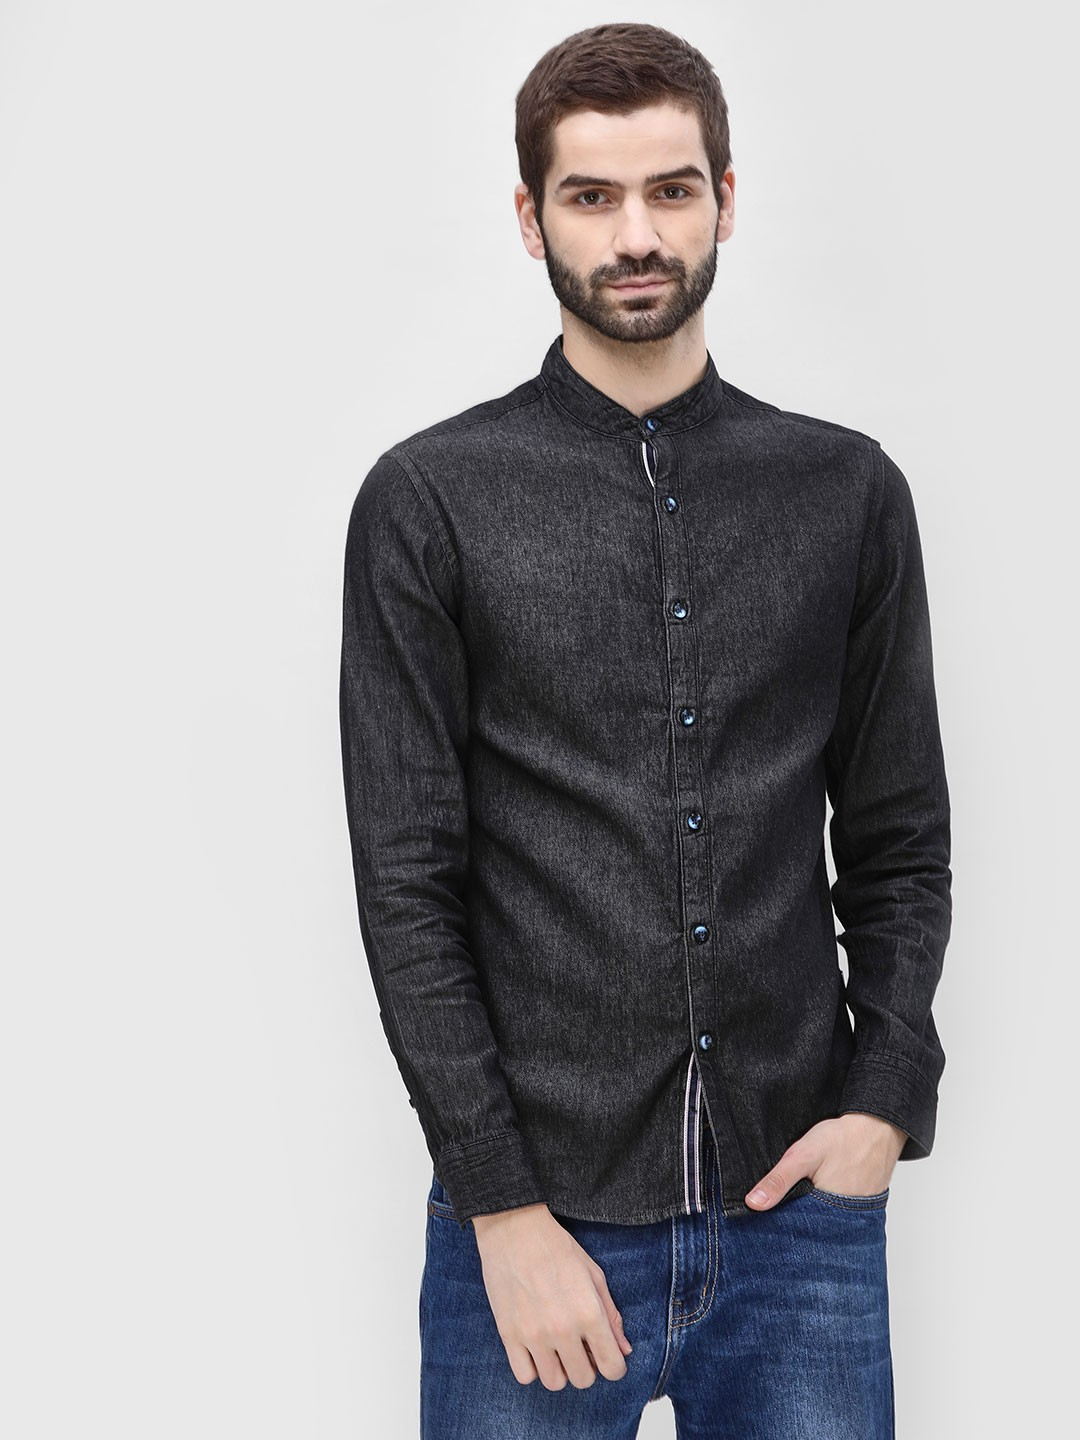 Blue Saint Black Slim Fit Casual Shirt 1